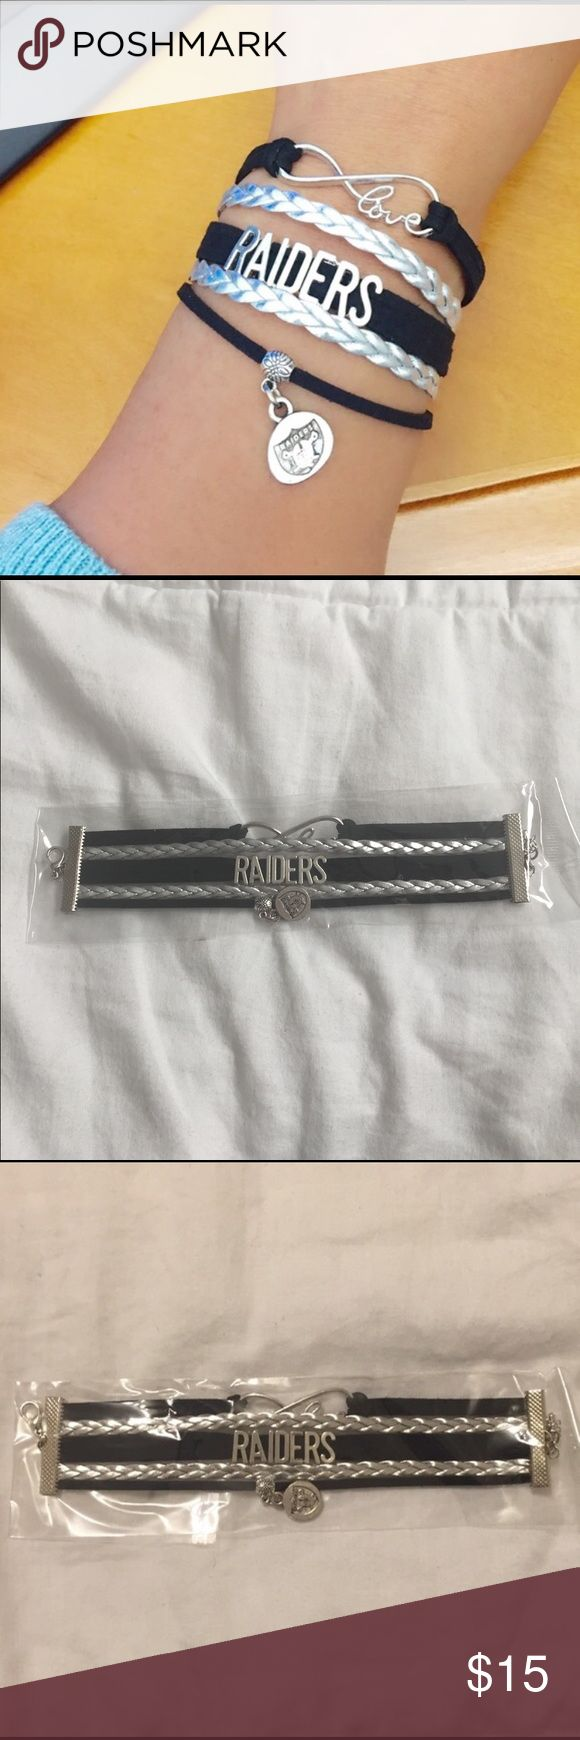 NIP Oakland RAIDERS Bracelet Are you a Raiders Fan? Represent the Raider Nation with this sweet bracelet!  It is new in package so it's Great as a gift. I wear mine proudly. Faux leather bracelet with infinity love /RAIDERS/Raider charm. Questions? Please ask prior to purchasing bundle and save. Jewelry Bracelets